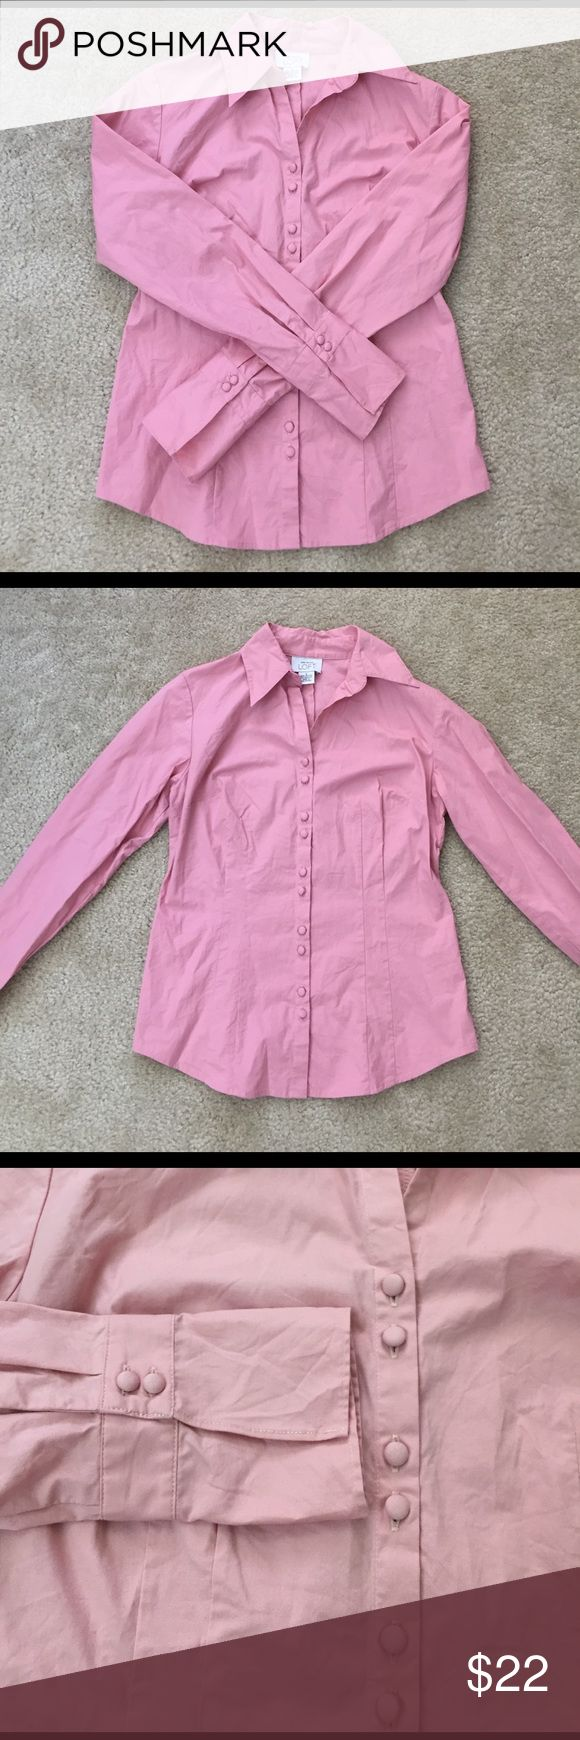 LOFT Baby Pink Woman Dress-shirt Blouse Wore few times, in very good condition. The color is baby pink-in the pictures looks brighter than in real life. Very elegant dress-shirt, good for office and for going out. I'm open for reasonable offers. LOFT Tops Blouses